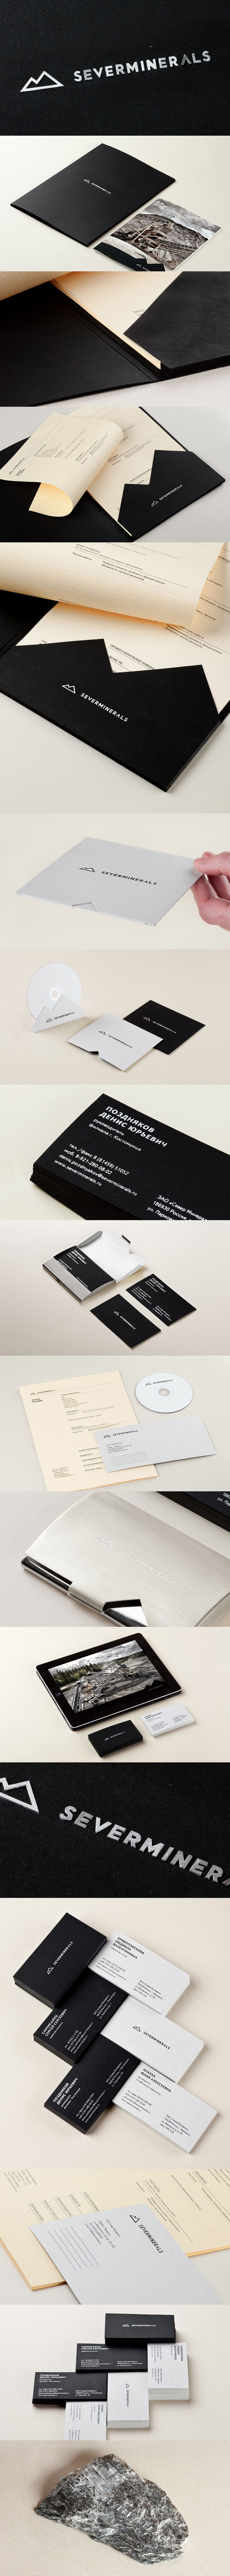 Severminerals, Identity Branding Suite. Black. Silver. Business Card ...